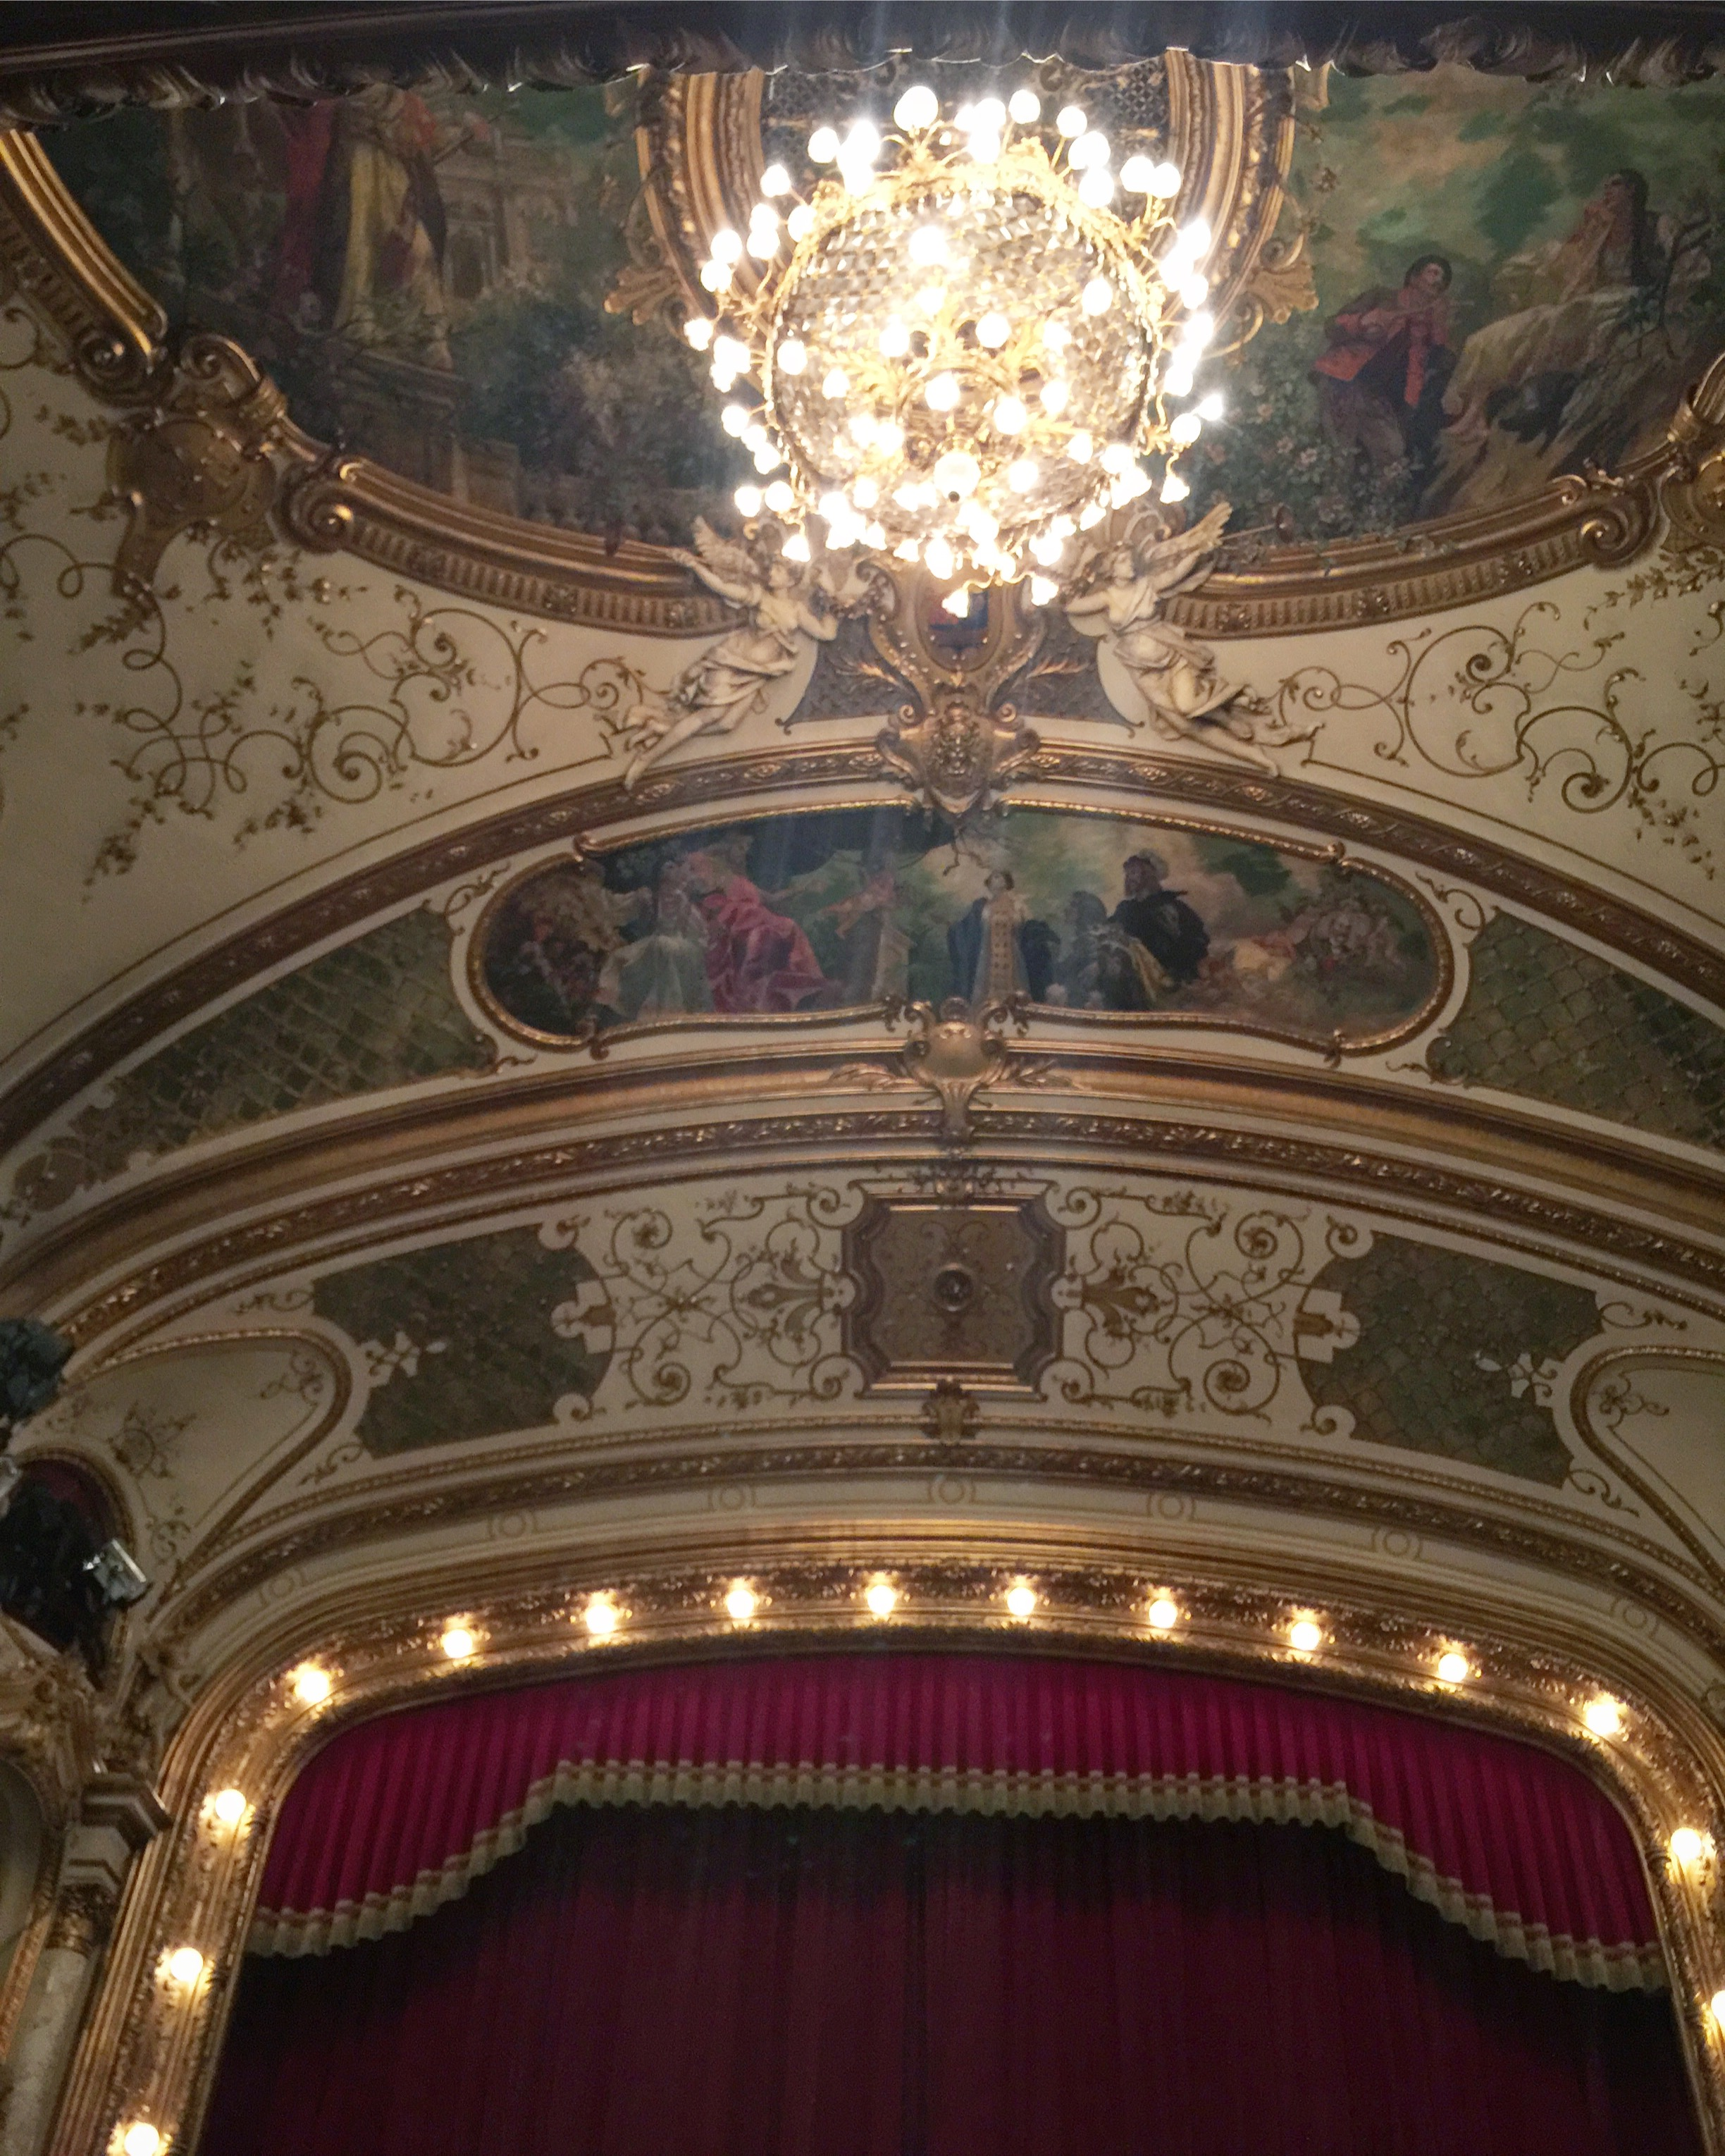 HNK Theater Ceiling.JPG